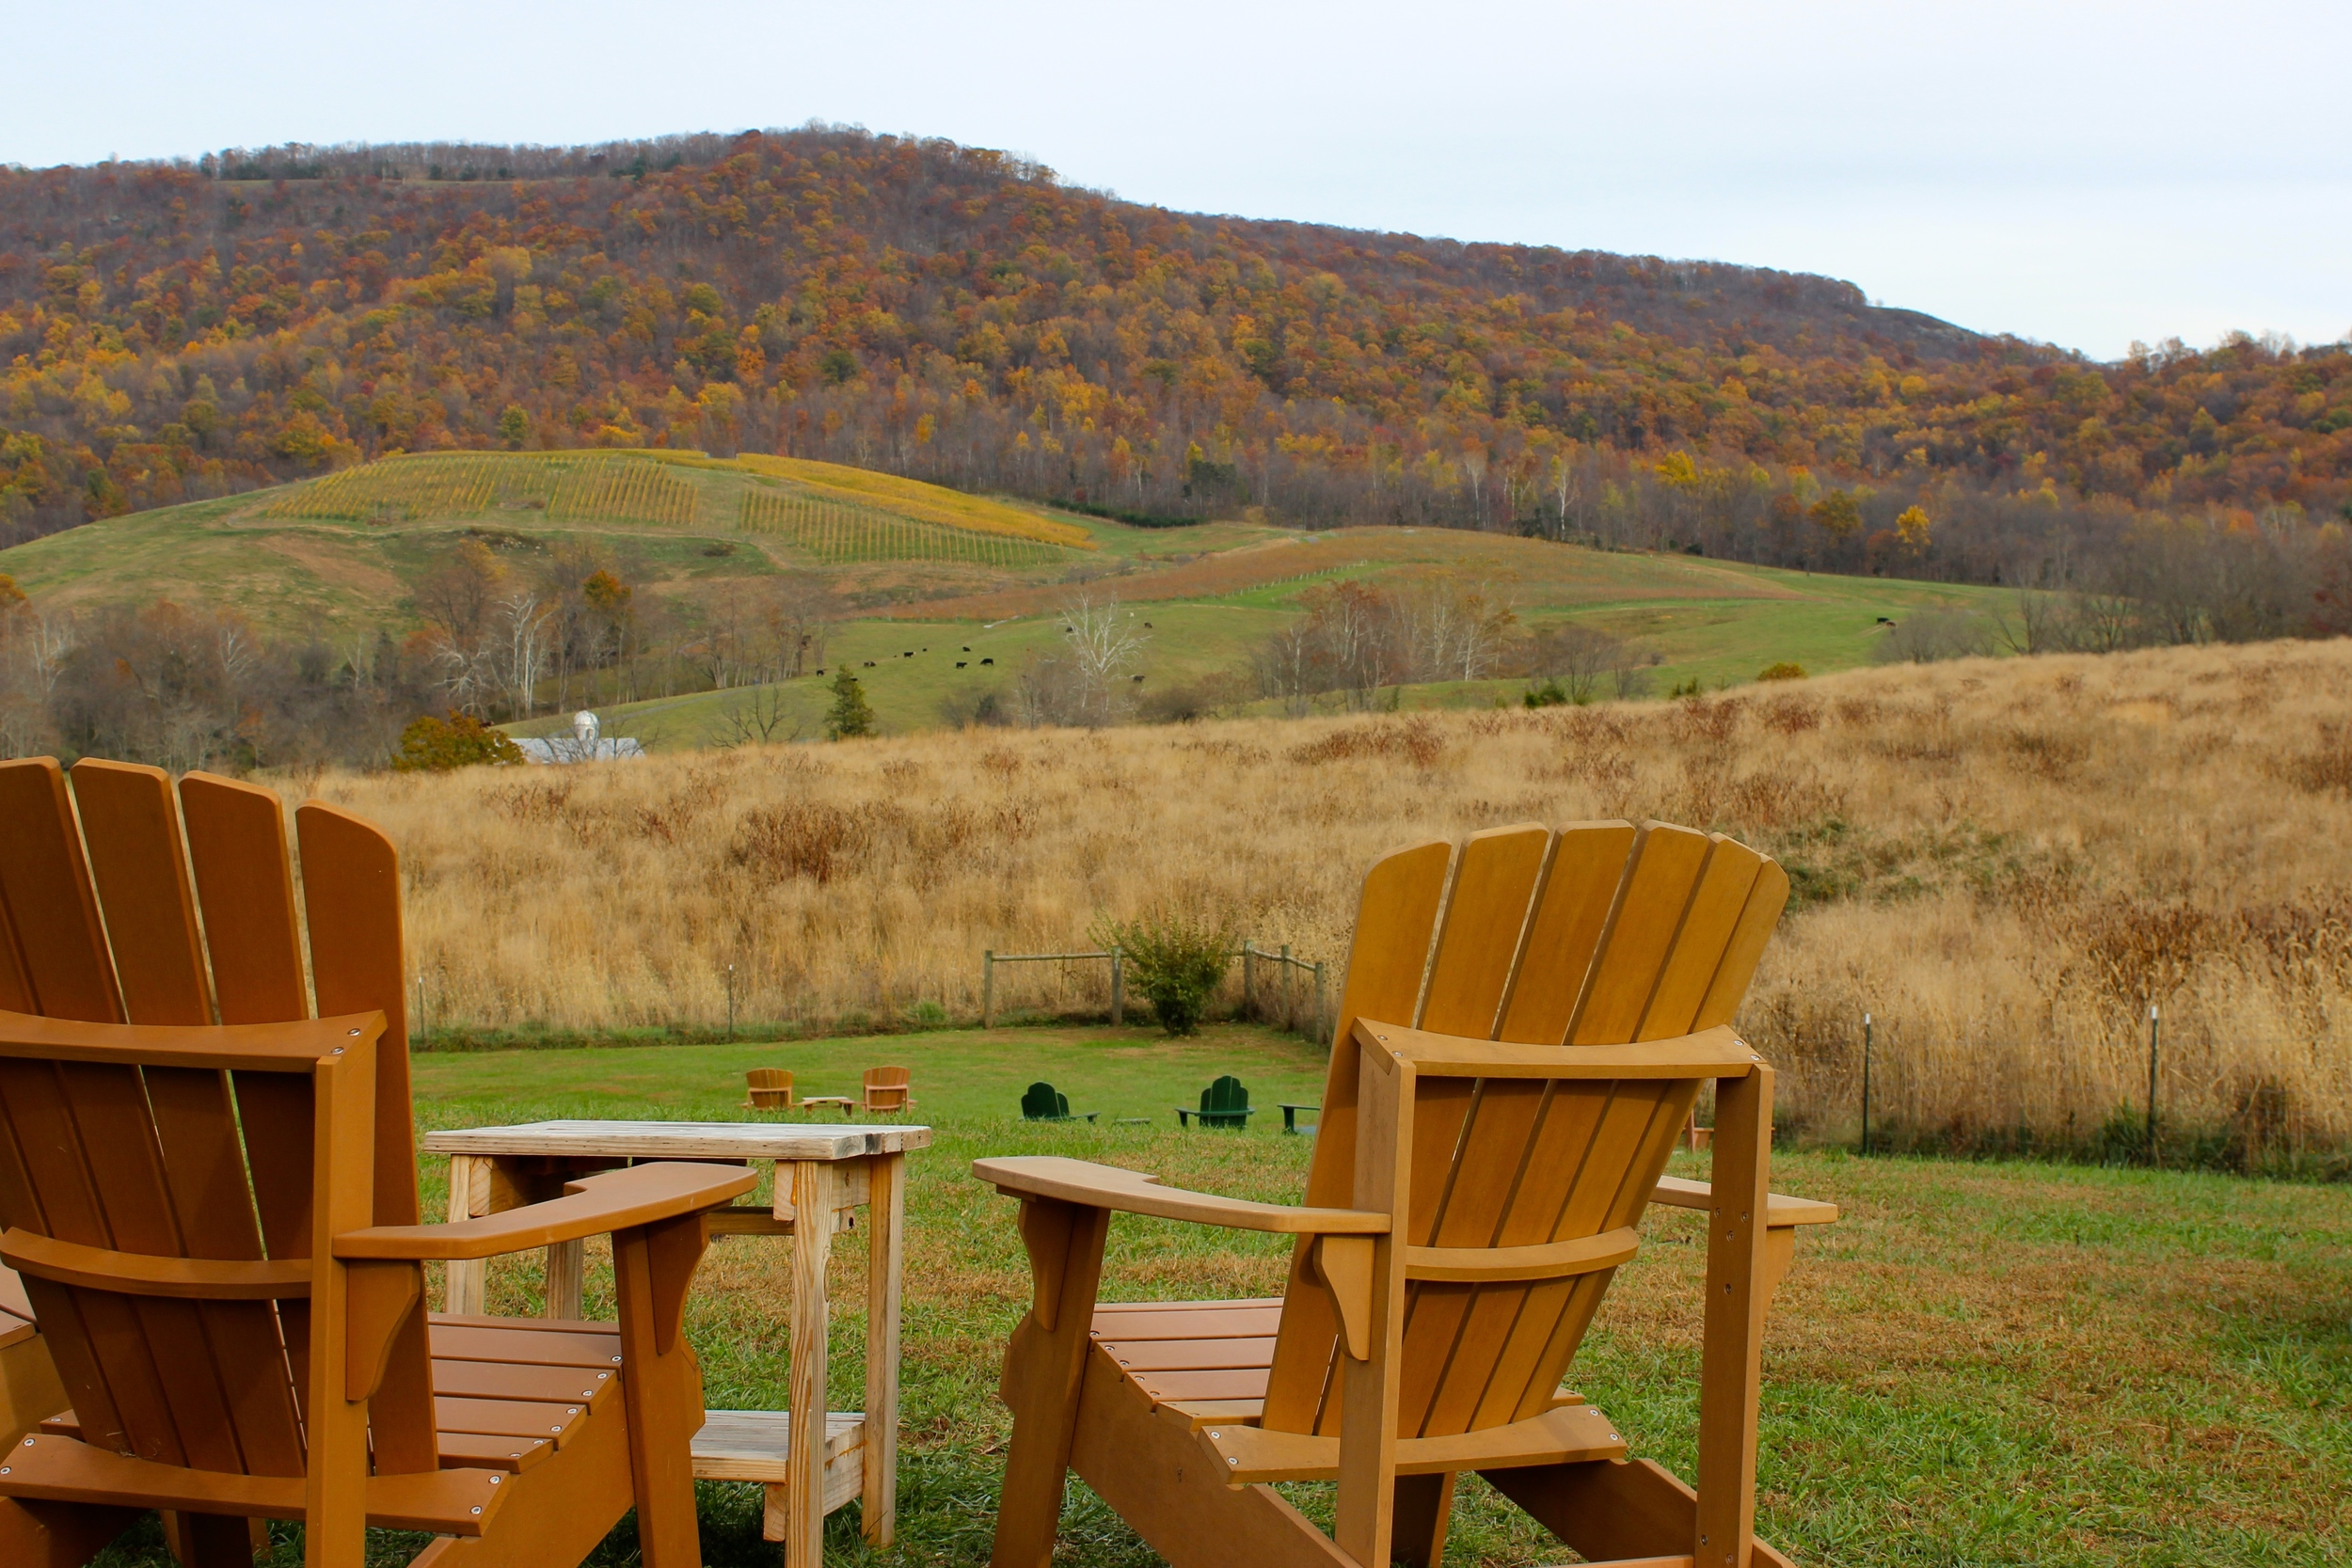 On a fall day, at Glen Manor Vineyards